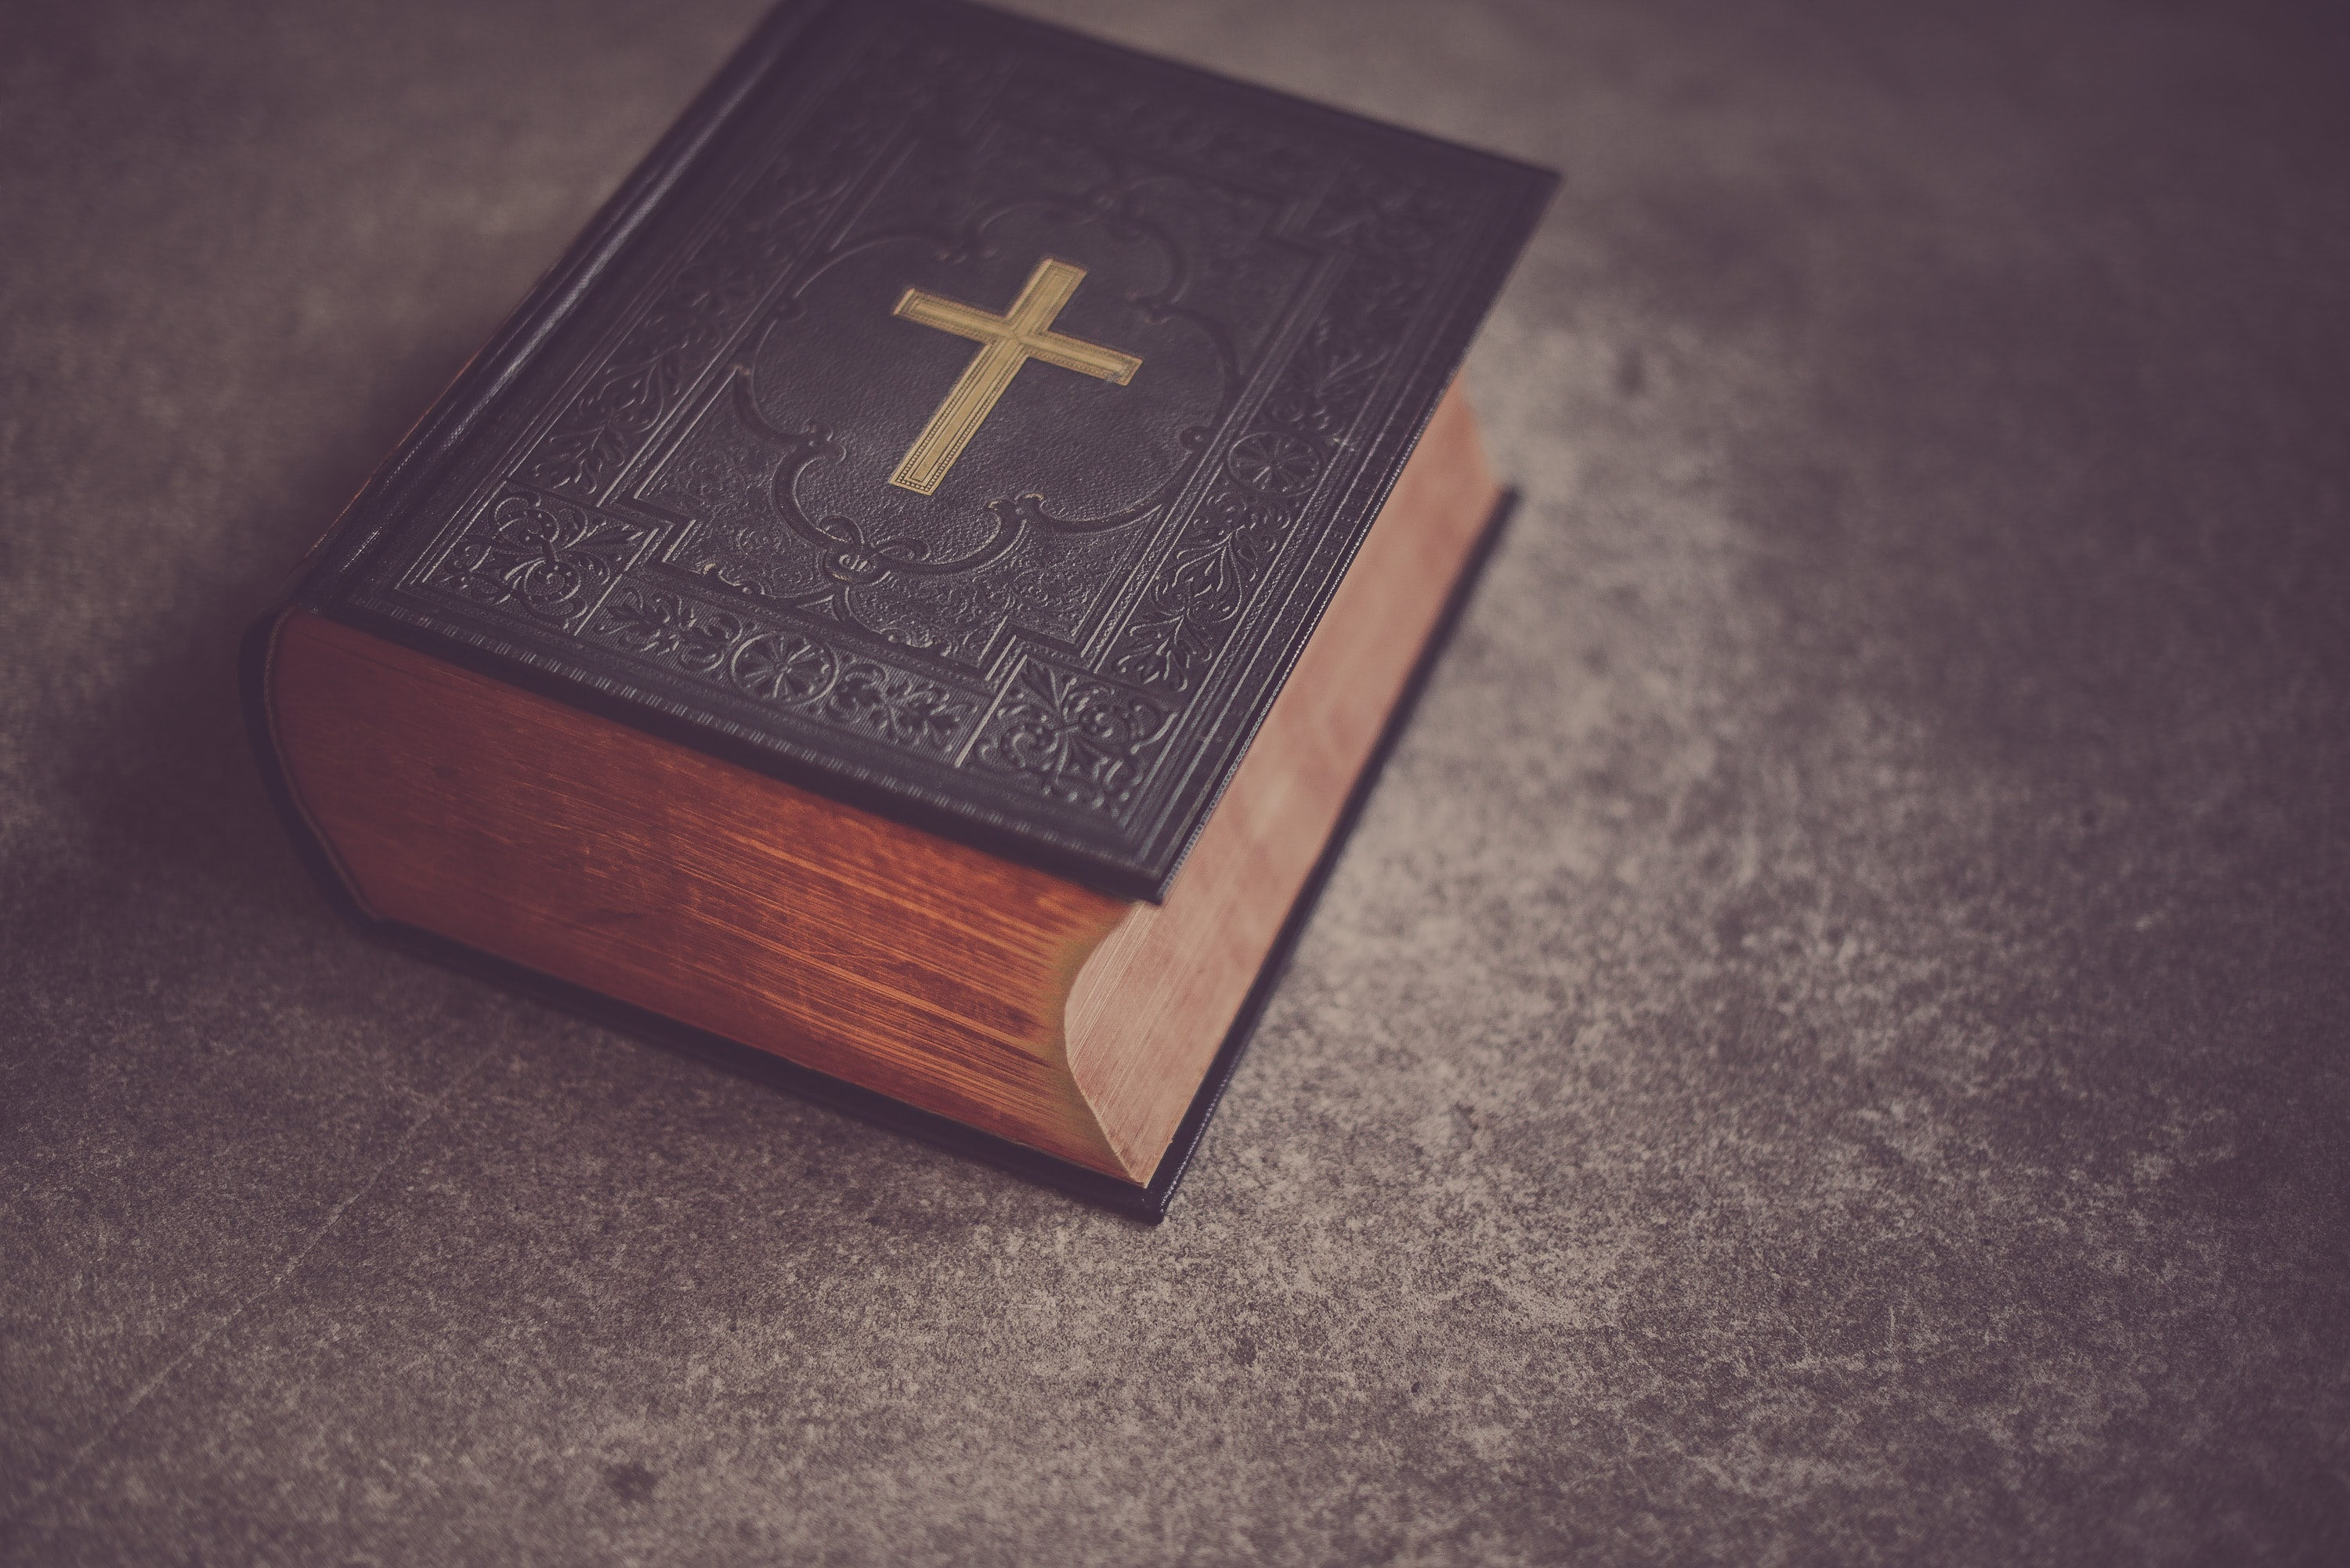 Nigeria receives shipment of Bibles and Christian books